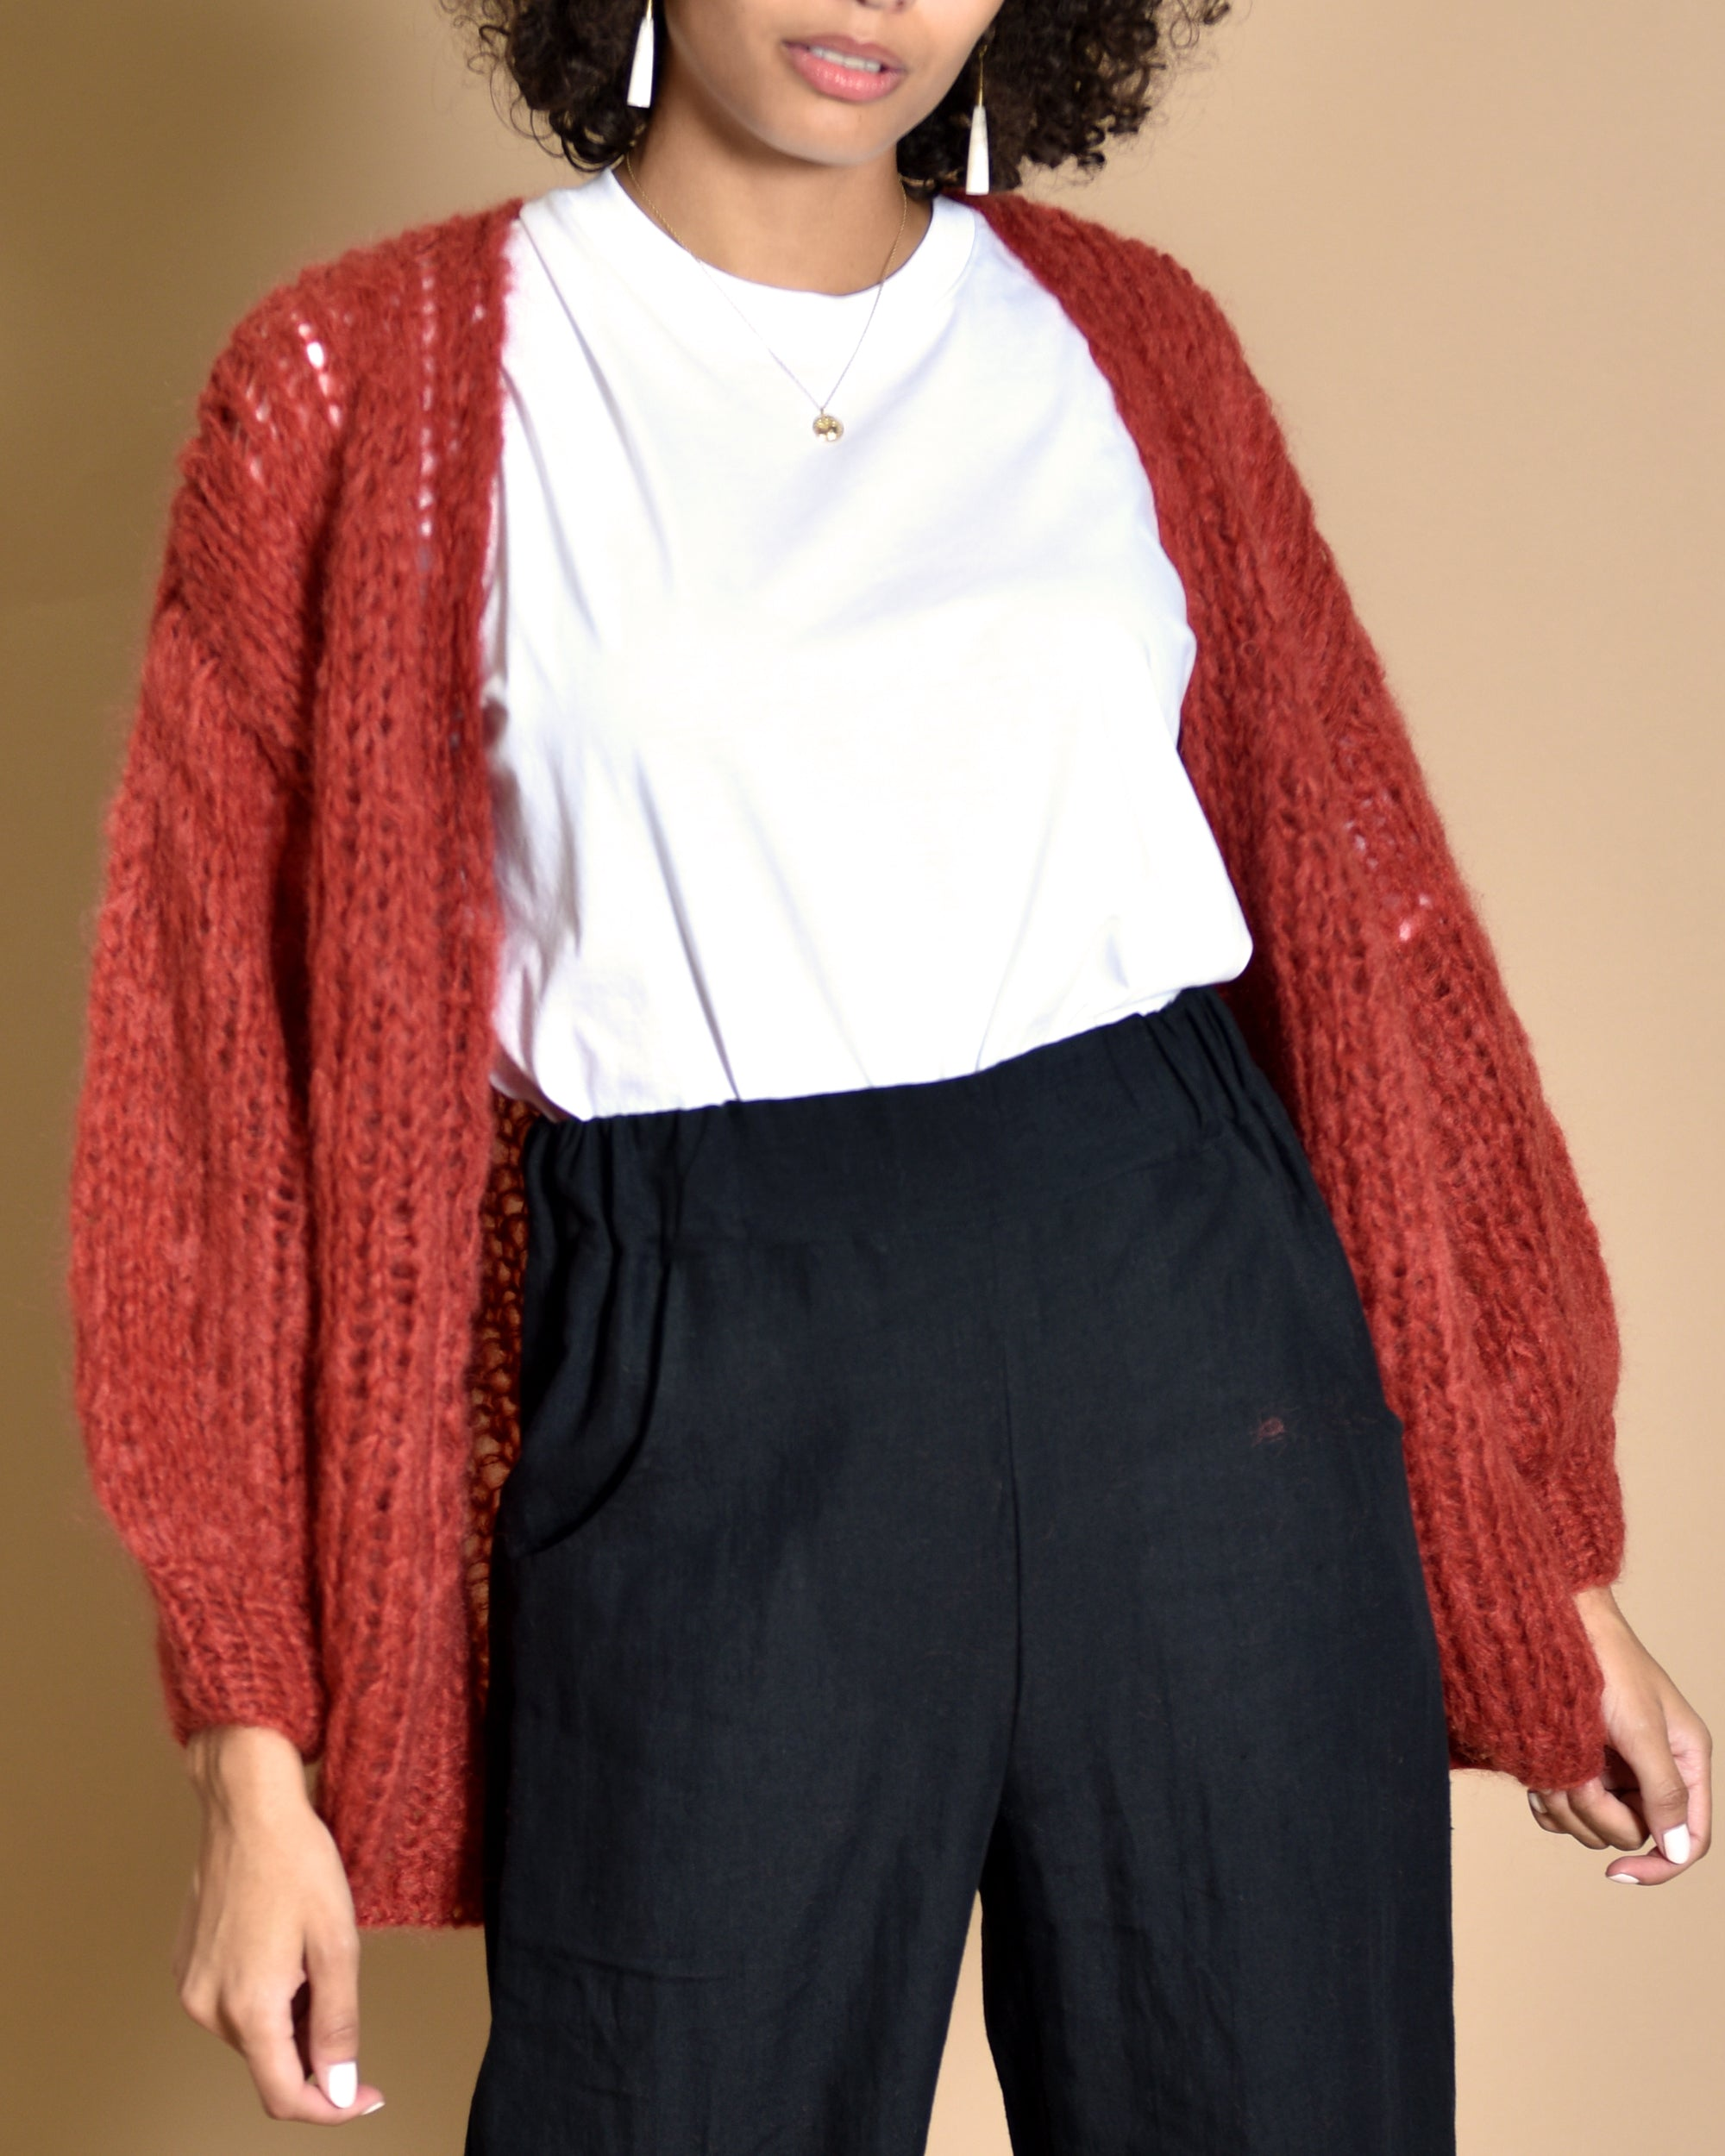 MAIAMI Oversized Mohair Cardigan / Rusty Red